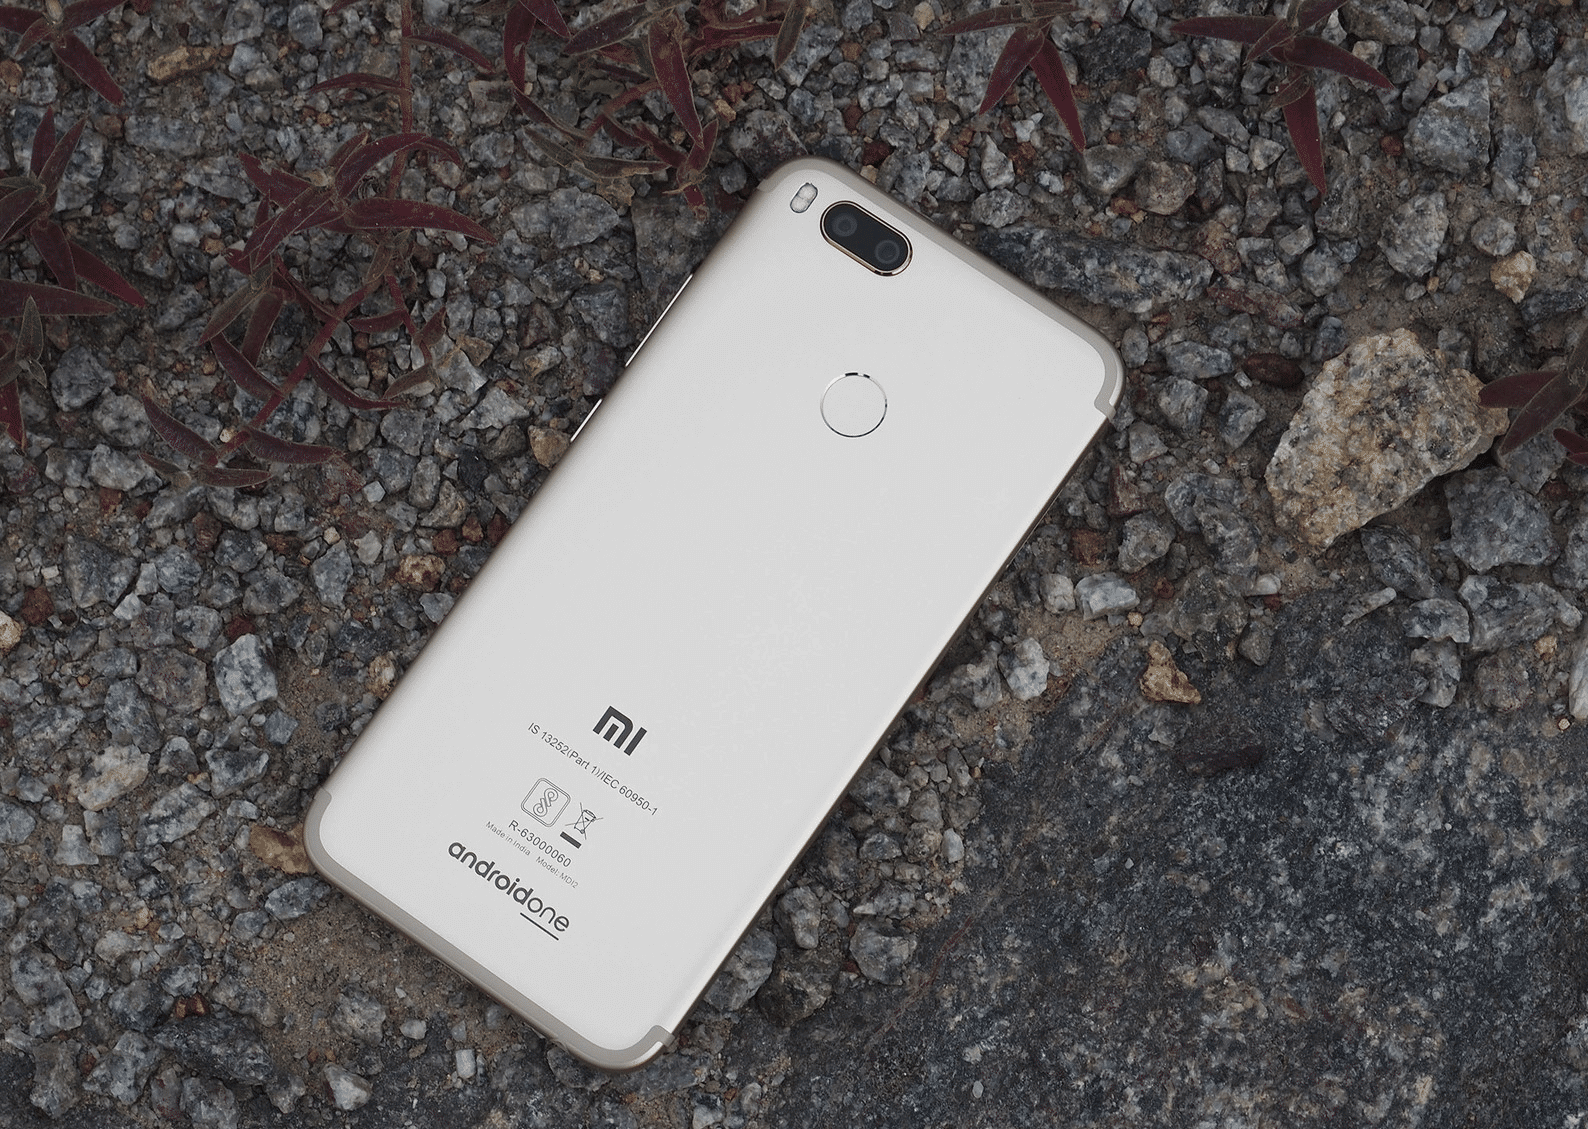 Xiaomi Mi A1 updated on Android 7.1 Nougat official update 11